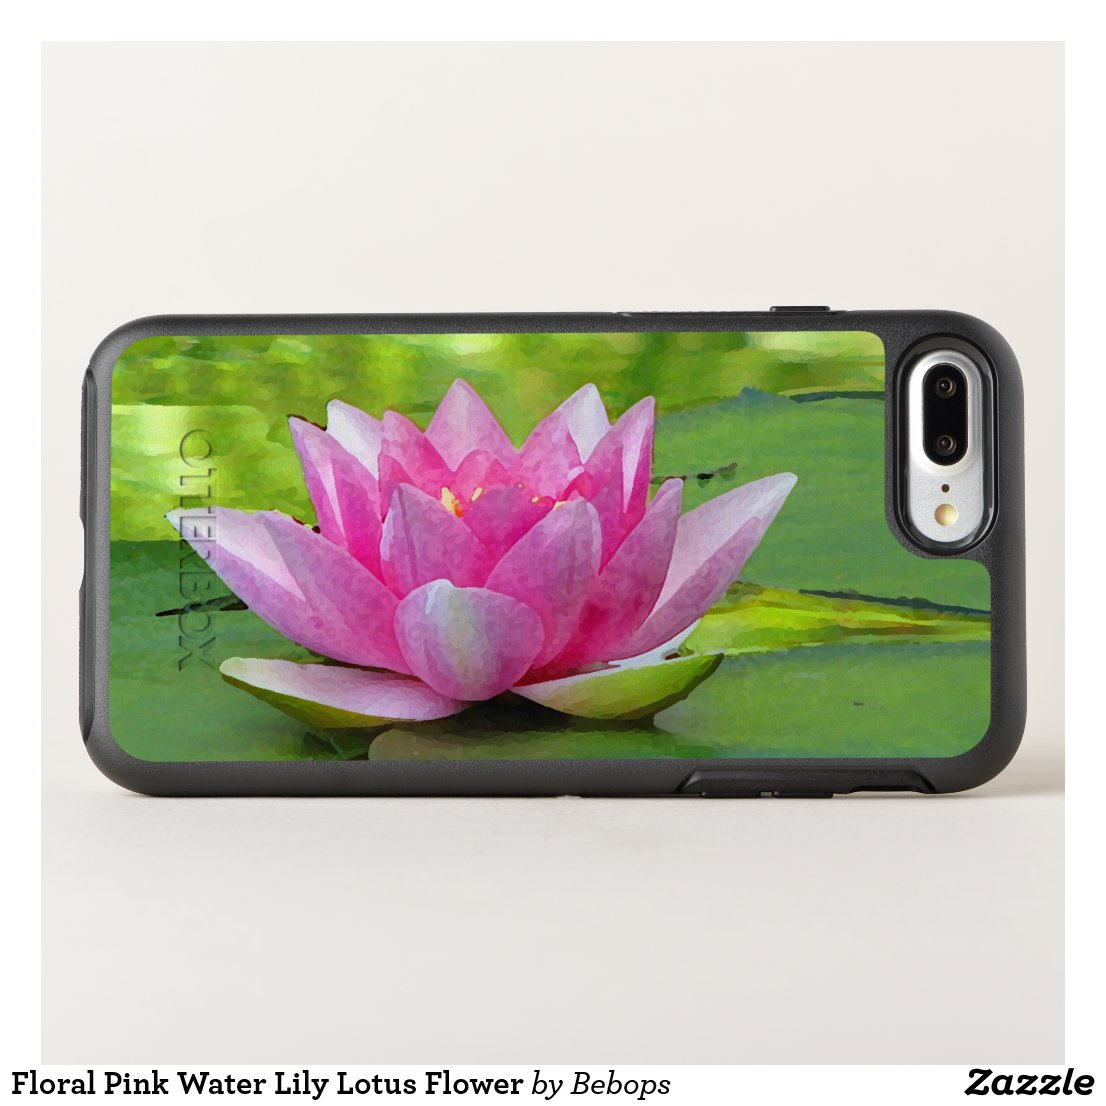 Floral Pink Water Lily Lotus Flower OtterBox Symmetry iPhone 7 Plus Case